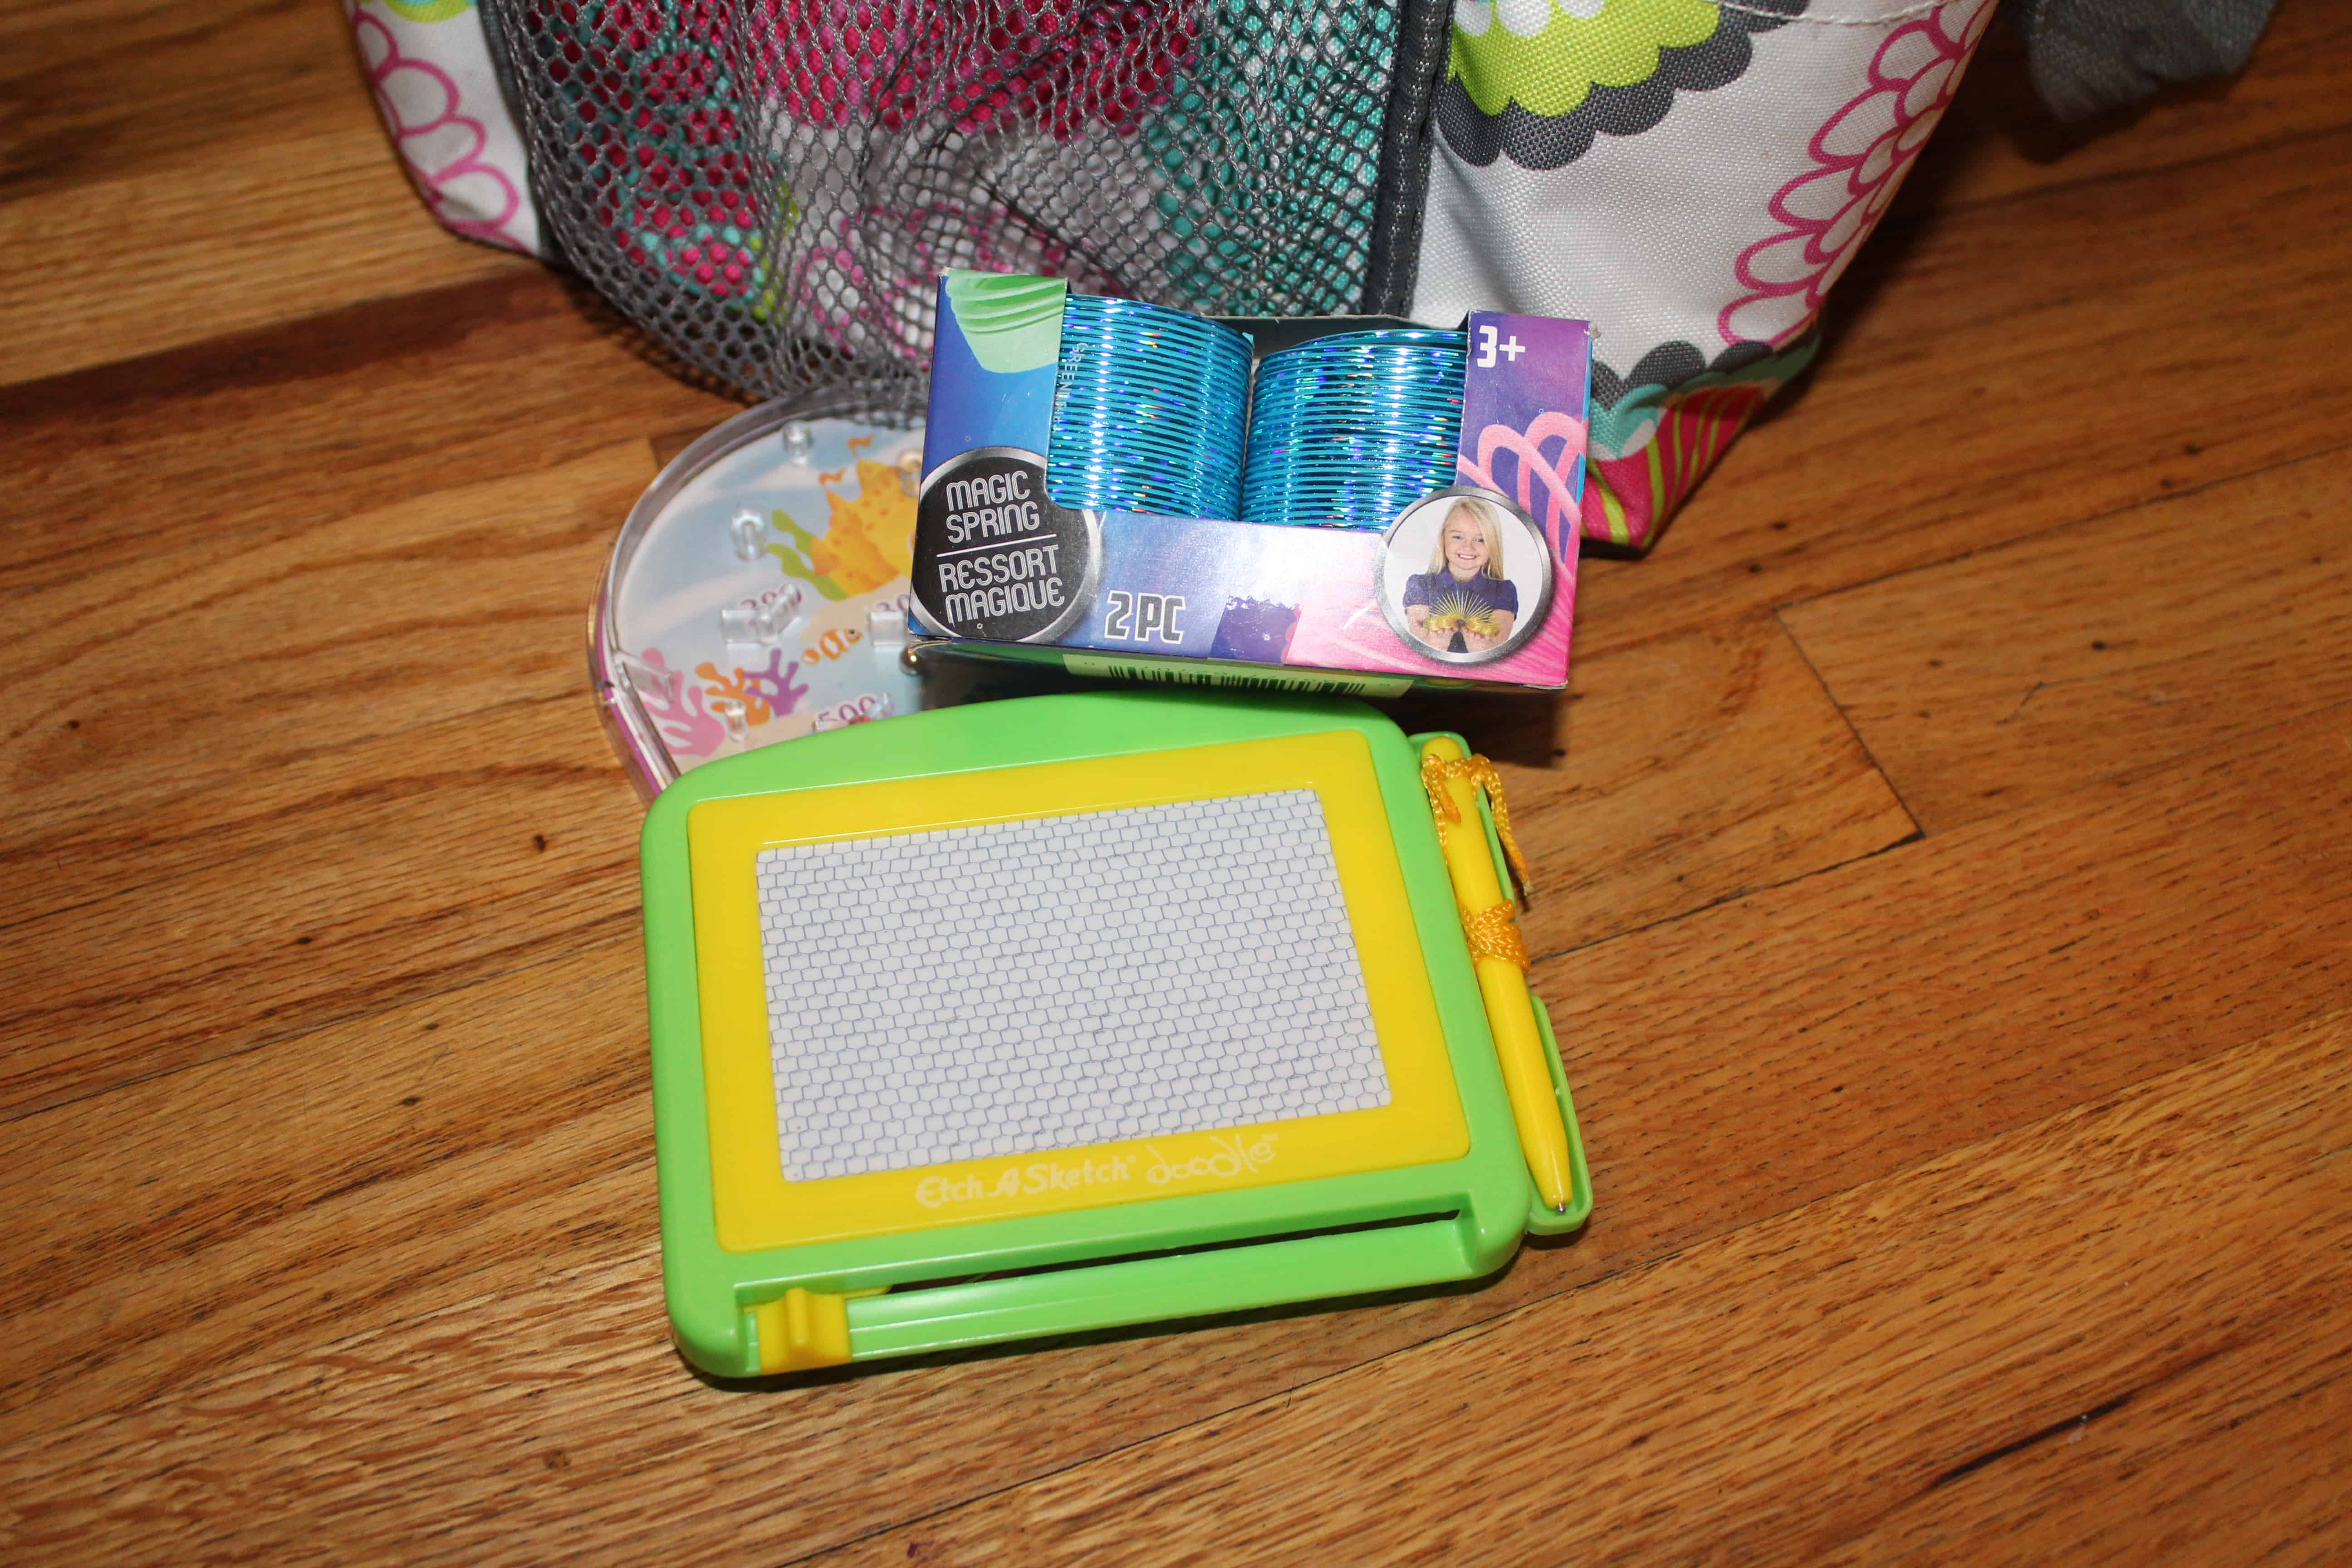 Magnadoodle board and slinkies which are perfect additions!